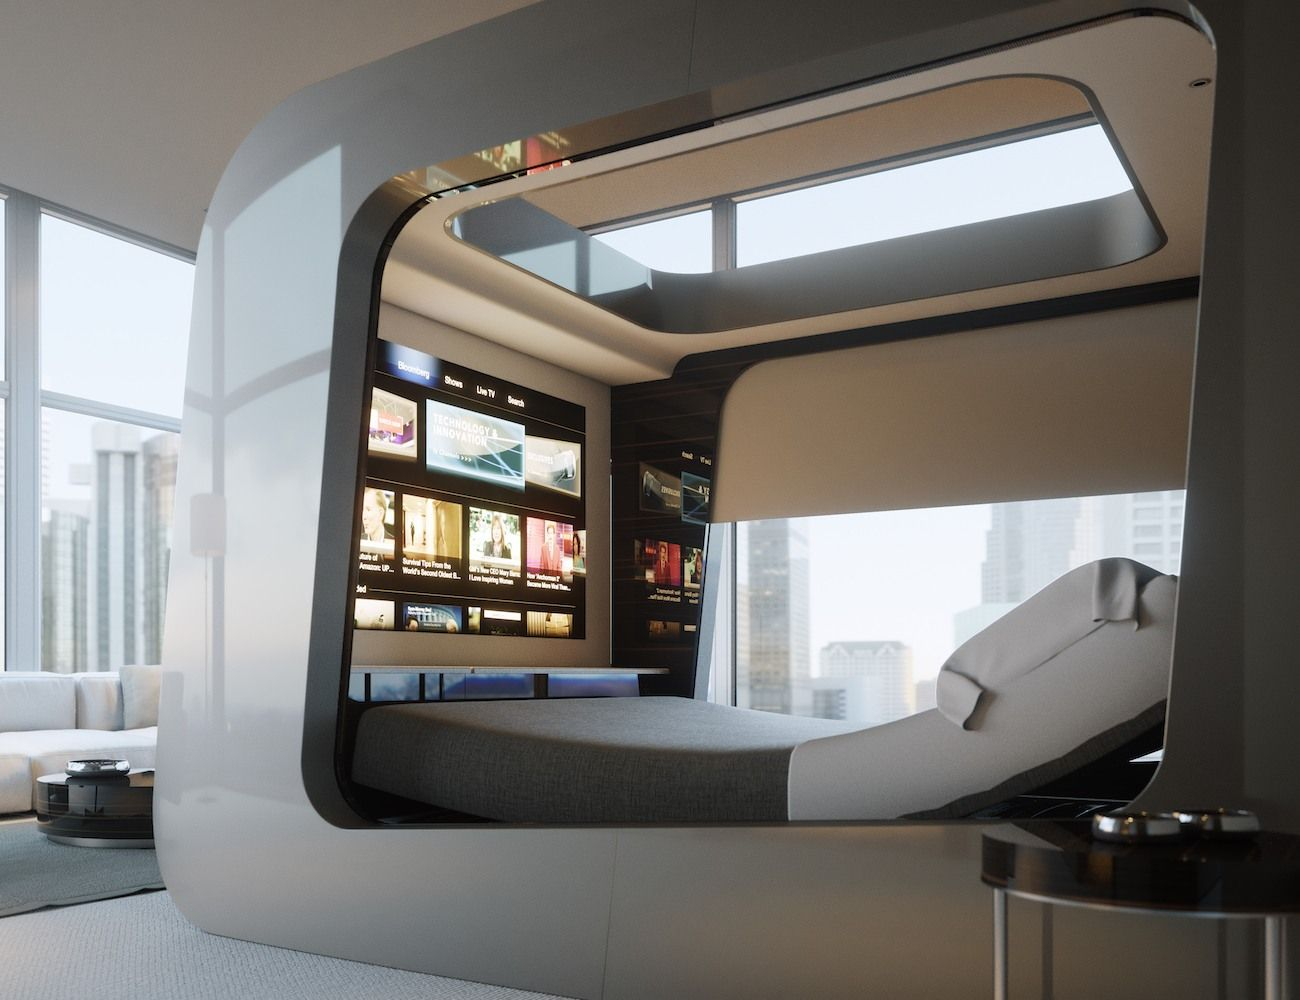 Hican Revolutionary Smart Bed Is Made For The Future Smart Home Design Futuristic Bedroom Home Technology